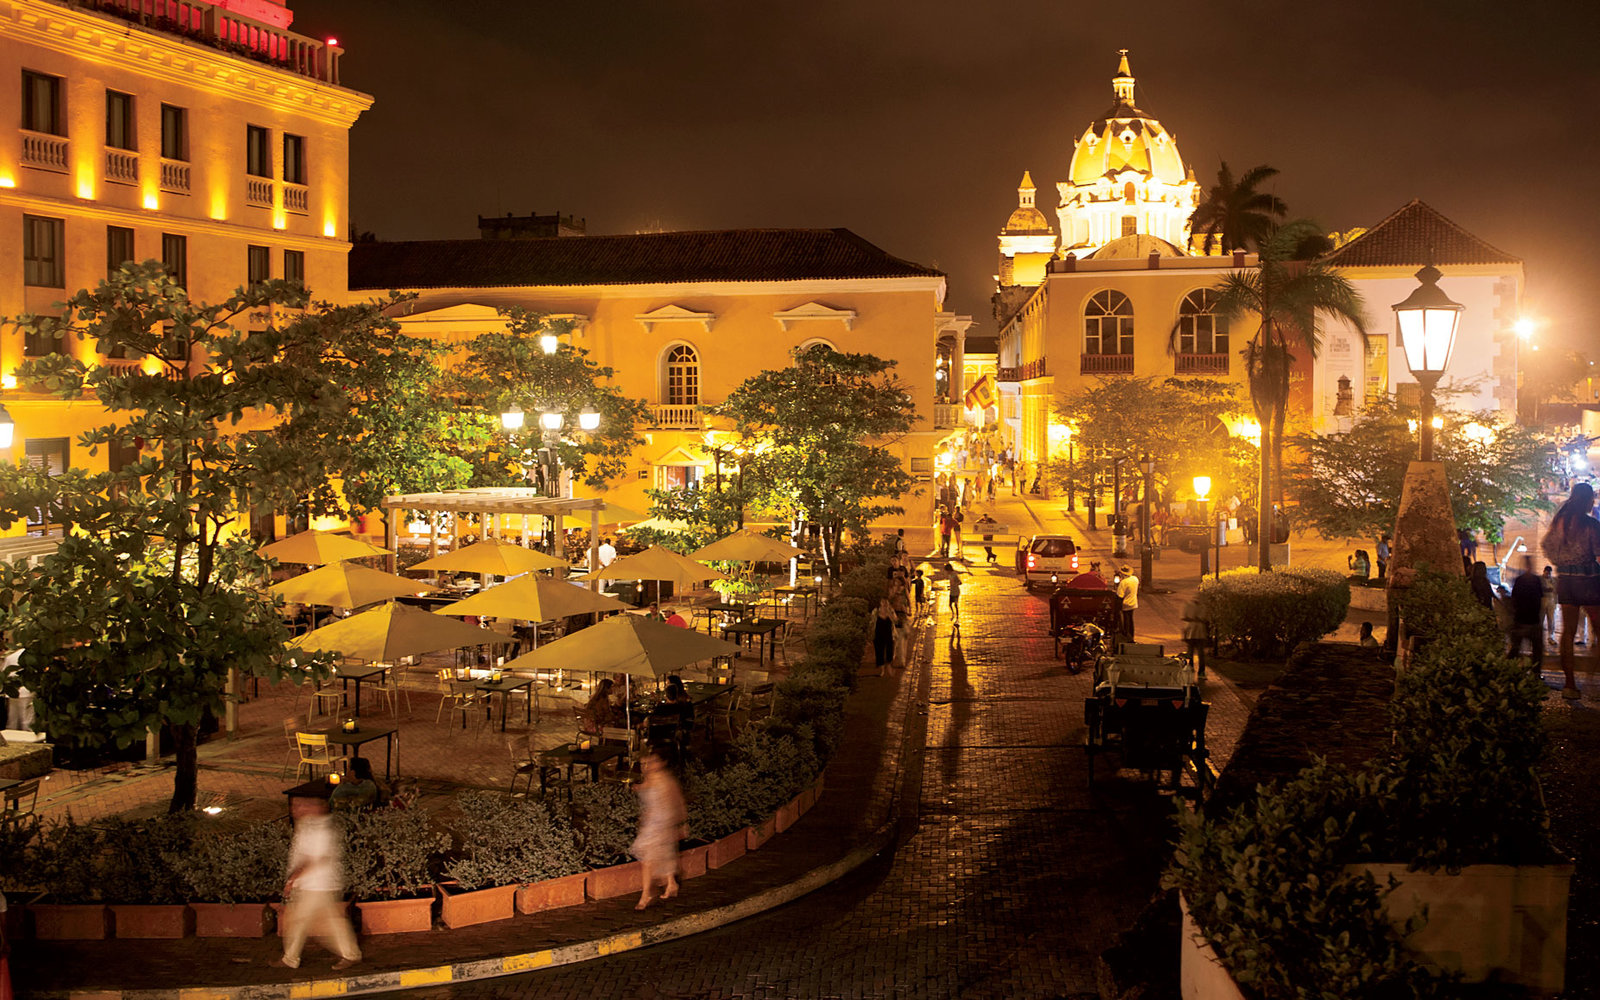 The InterContinental hotel at night in Cartagena, Colombia